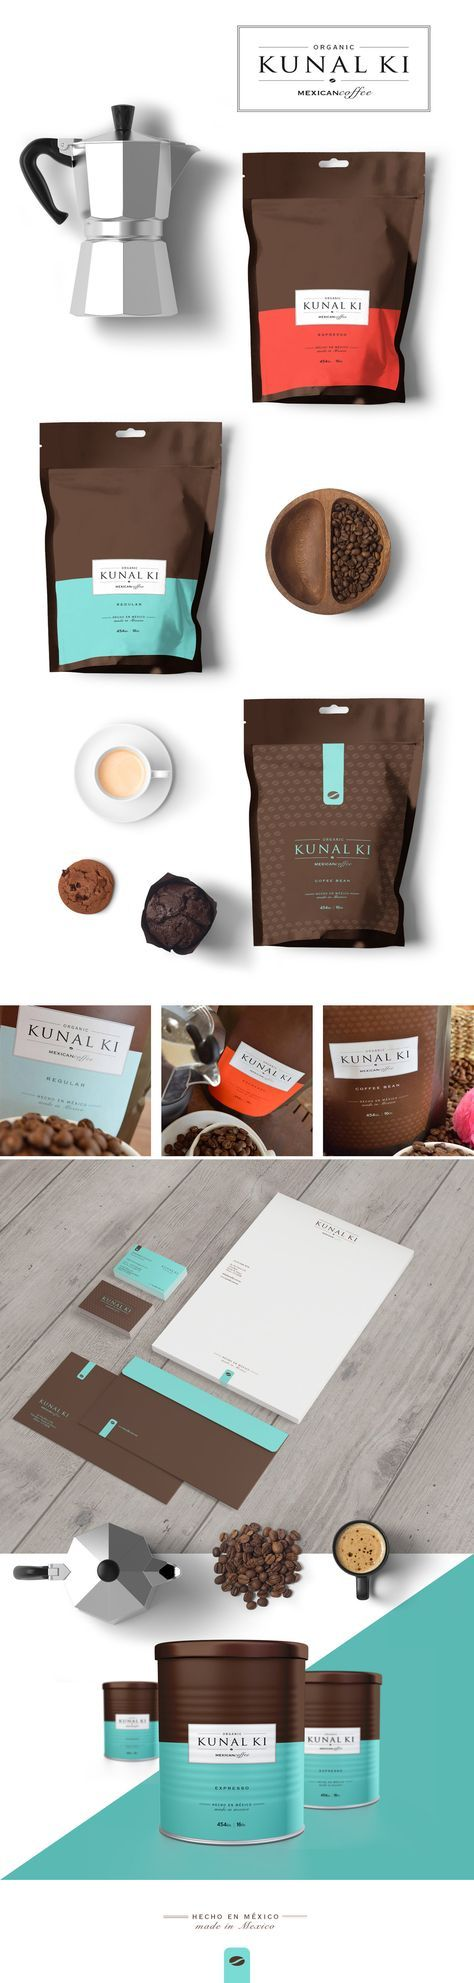 KUNAL KI mexican coffee - Packaging - SPAINCREATIVE